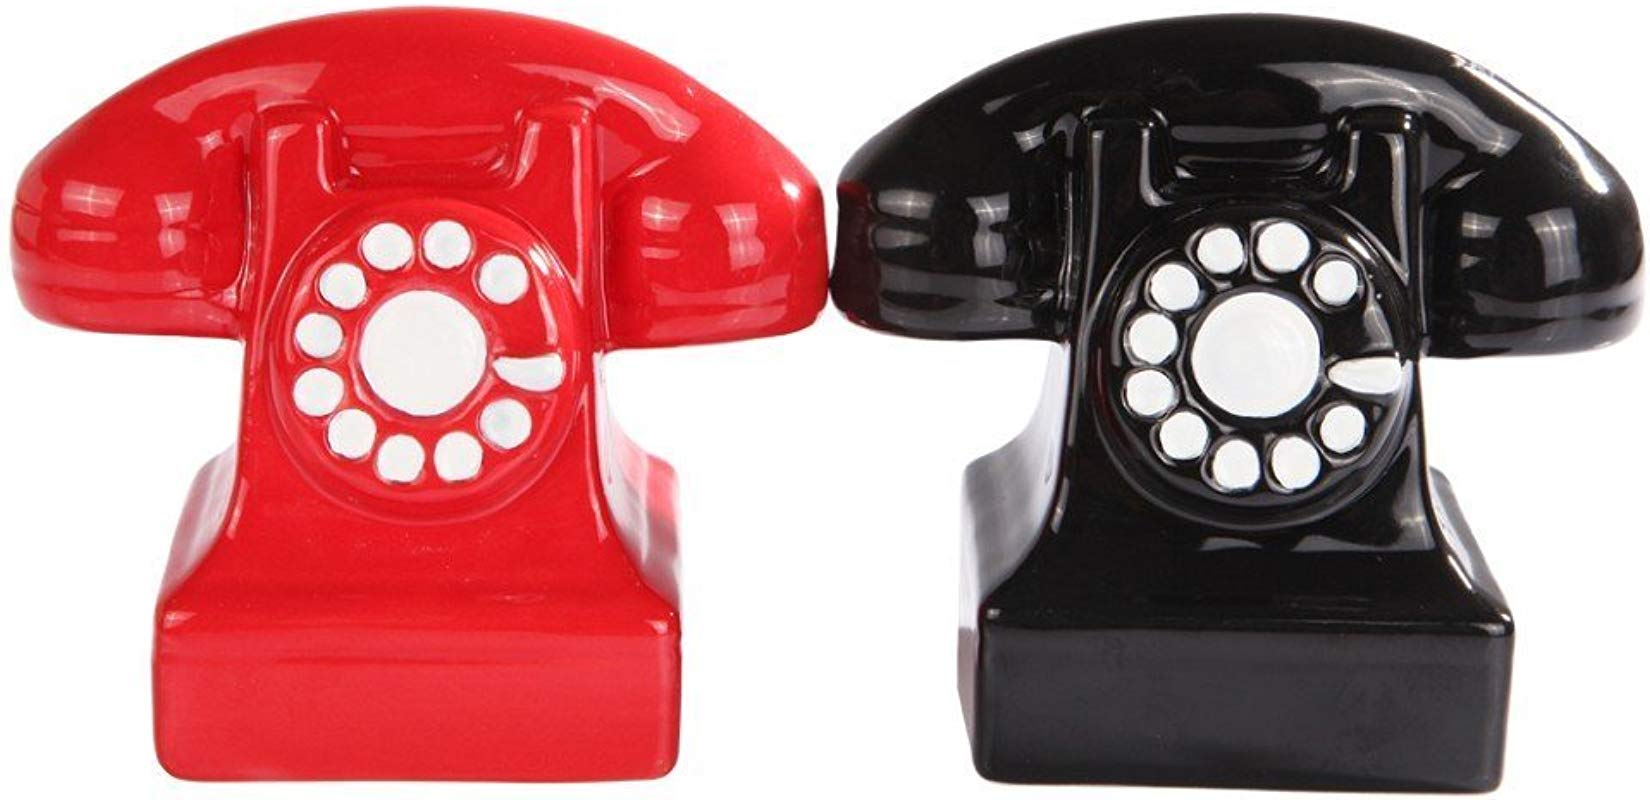 Attractives Magnetic Ceramic Salt Pepper Shakers Retro Phones Old Fashioned